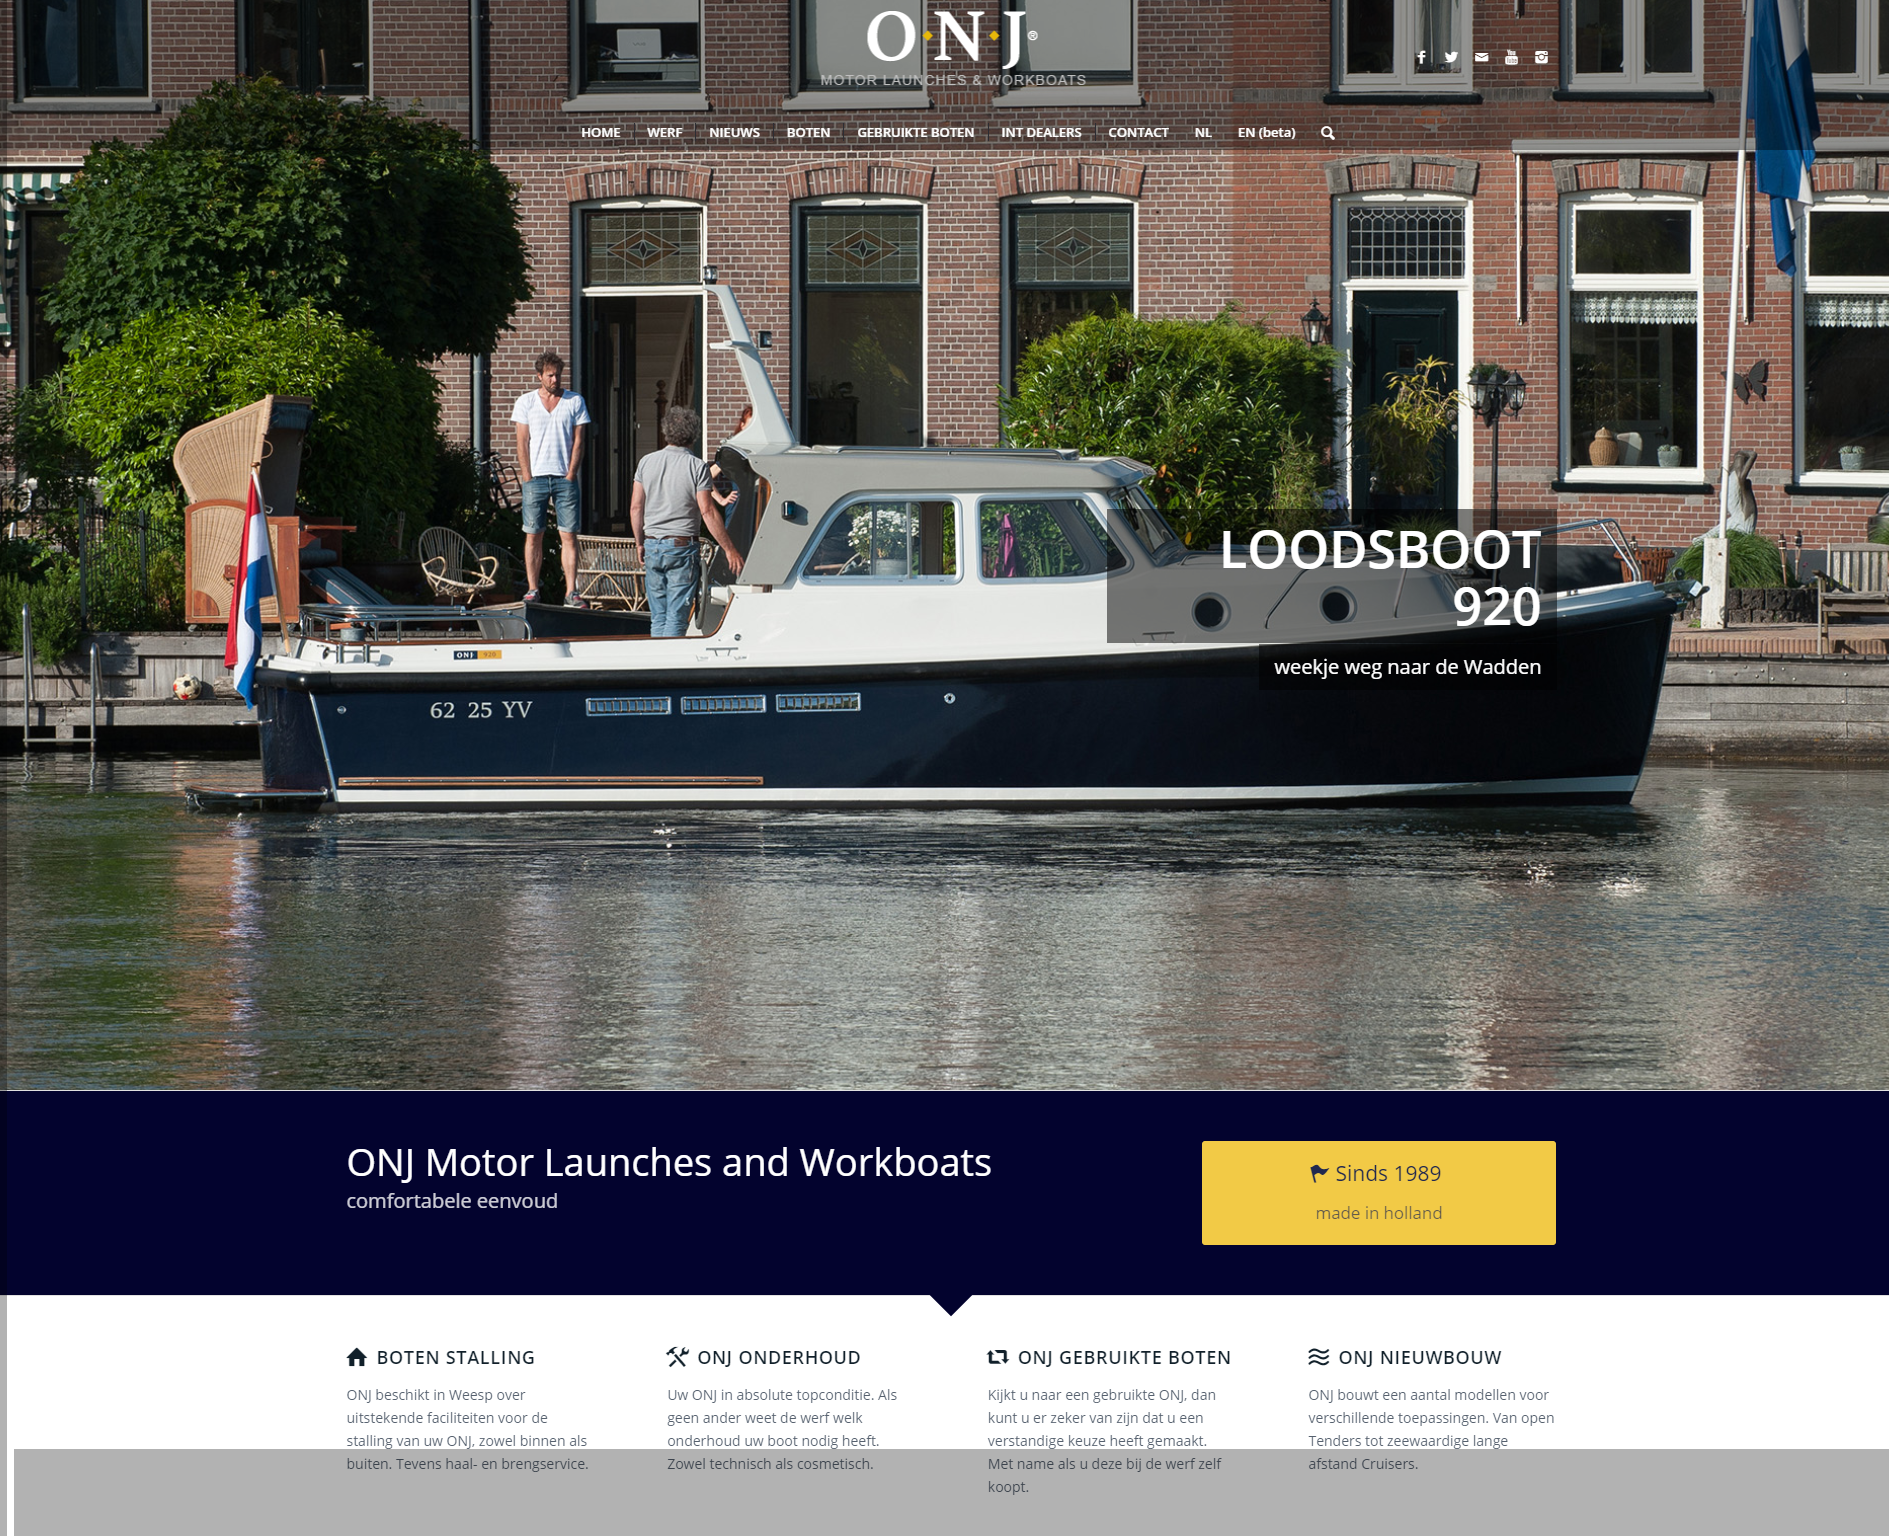 ONJ Motor Launches & Workboats